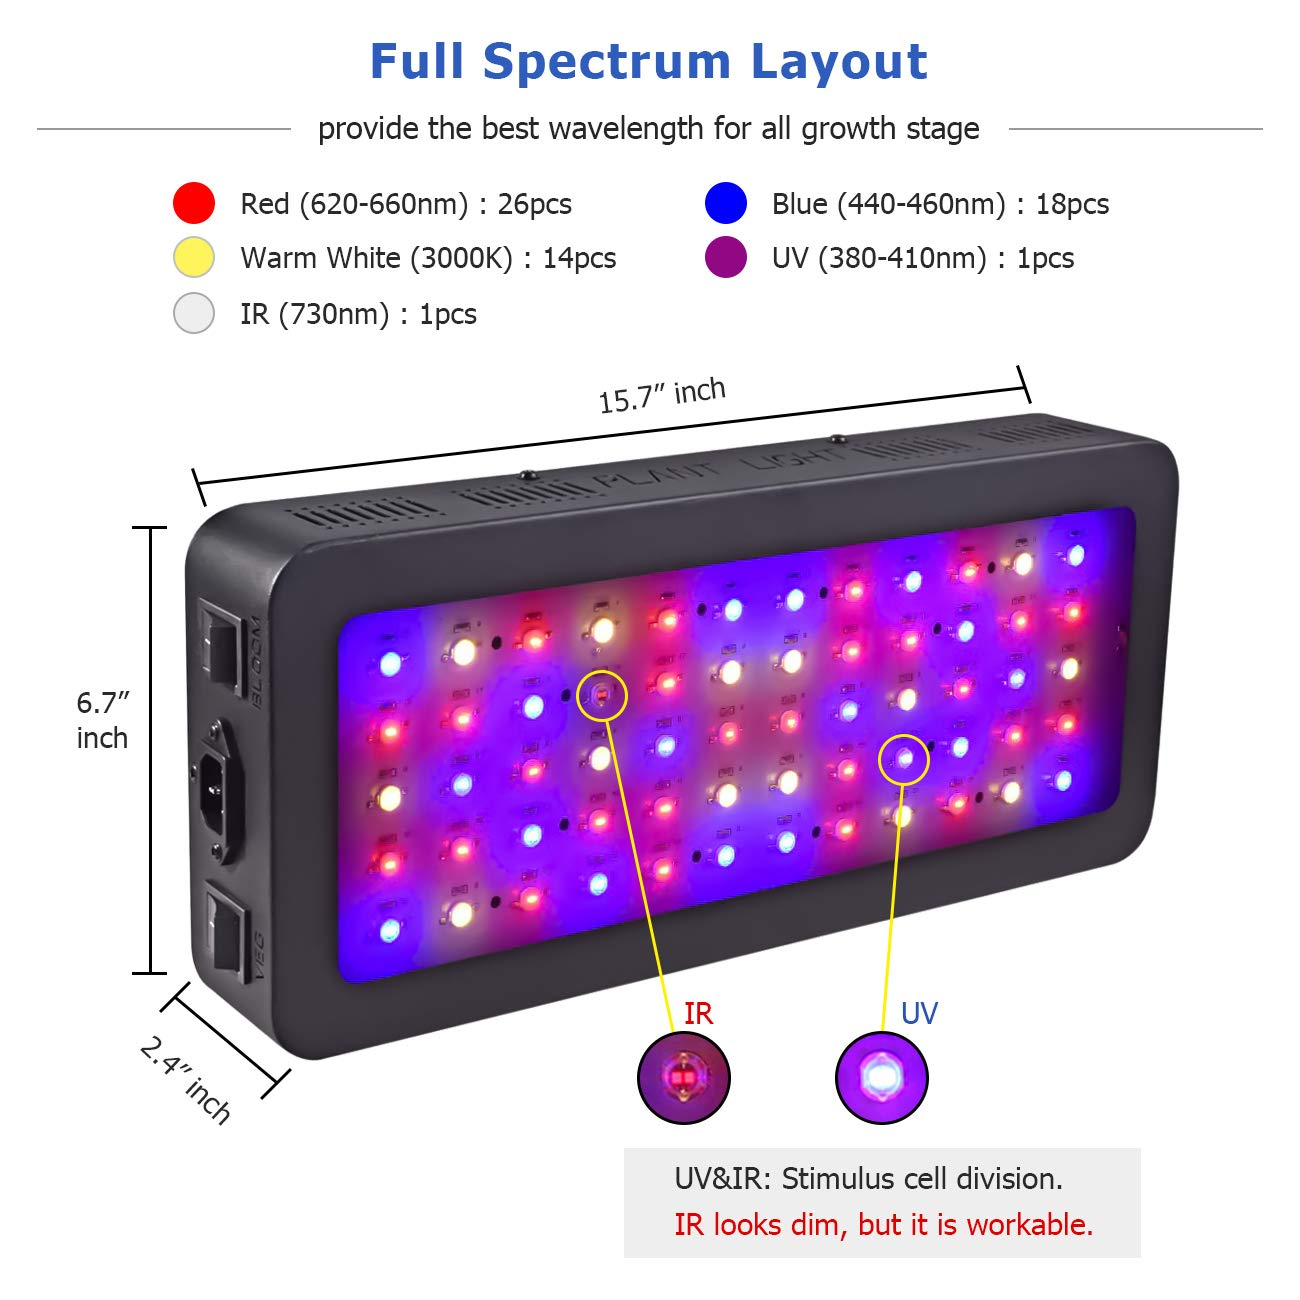 Golspark Indoor LED Grow Light, 600 Watt Full Spectrum Plant Light with Switch, IR&UV Growing Lamp Kits for Greenhouse Hydroponic Seedling Veg and Flower by Golspark (Image #2)